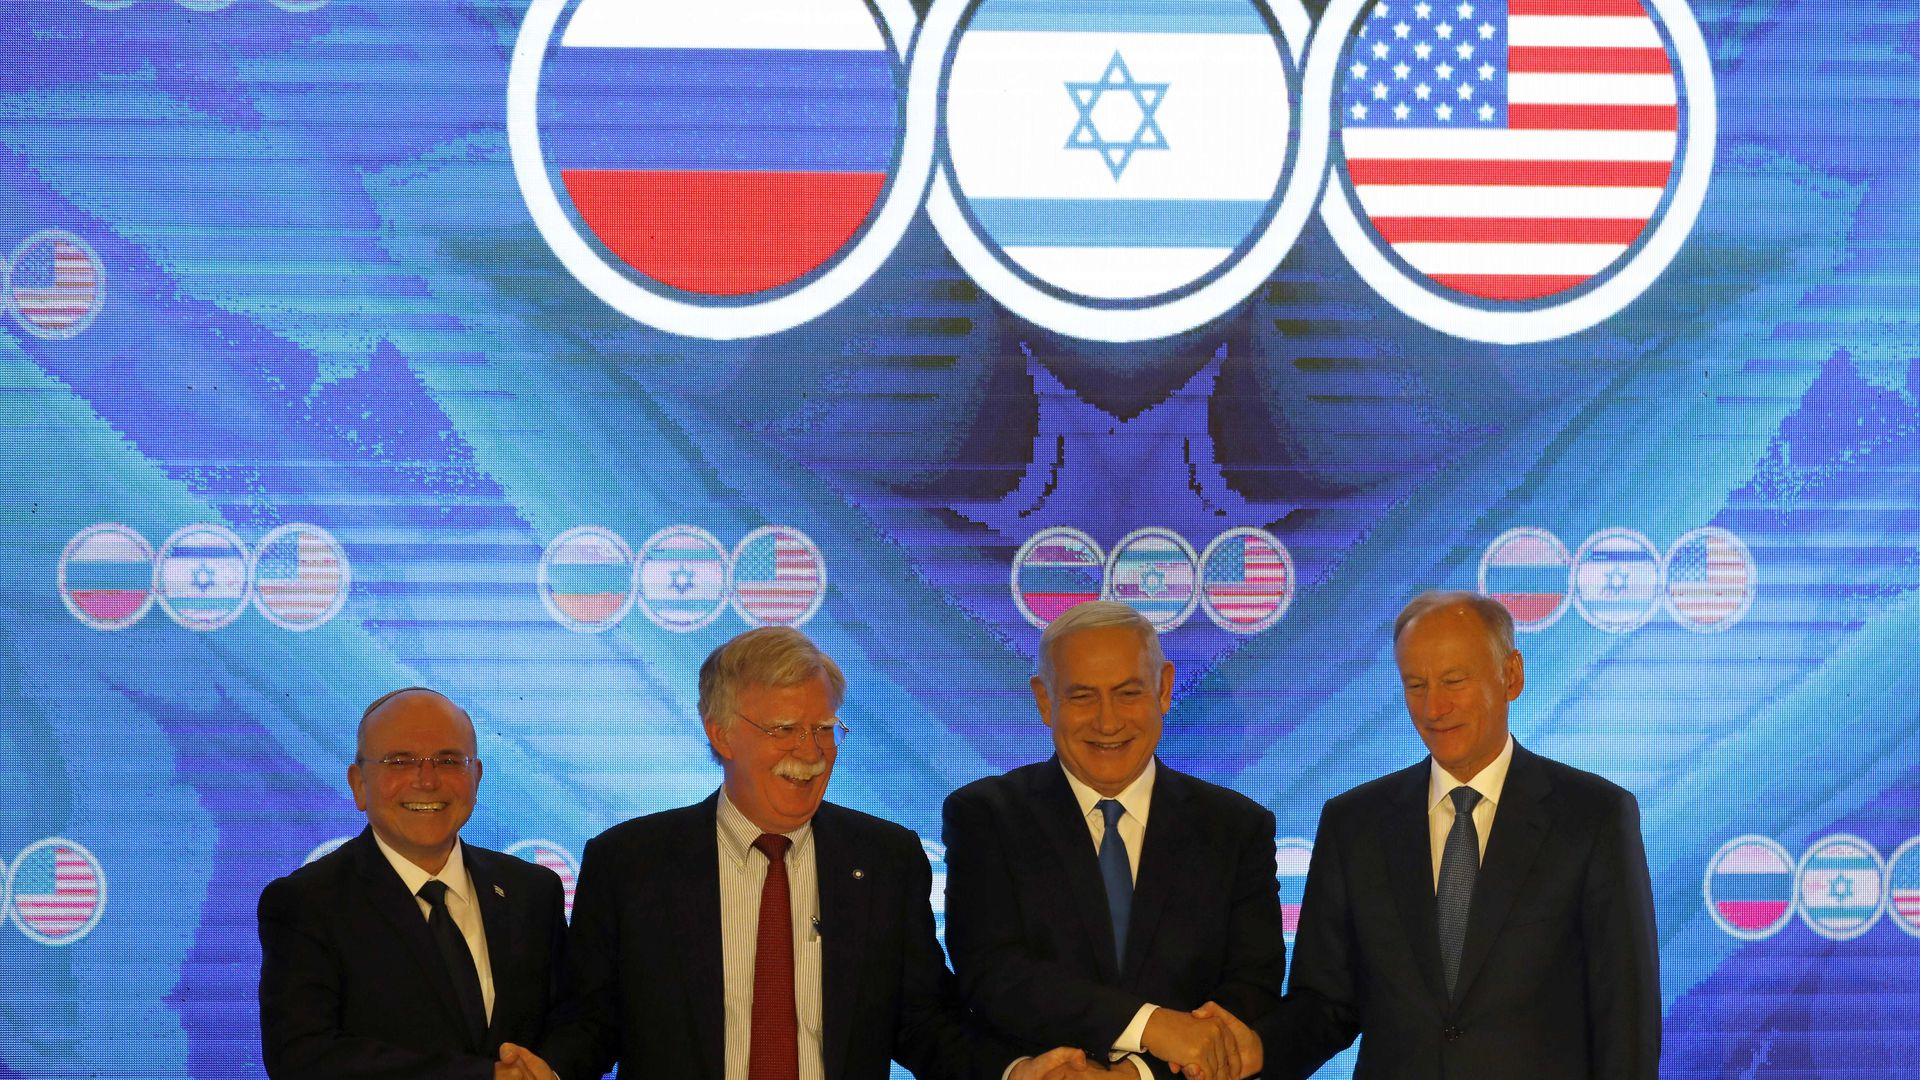 Syria deal requires Iranian pullback from Iraq and Lebanon, U.S. and Israel tell Russia